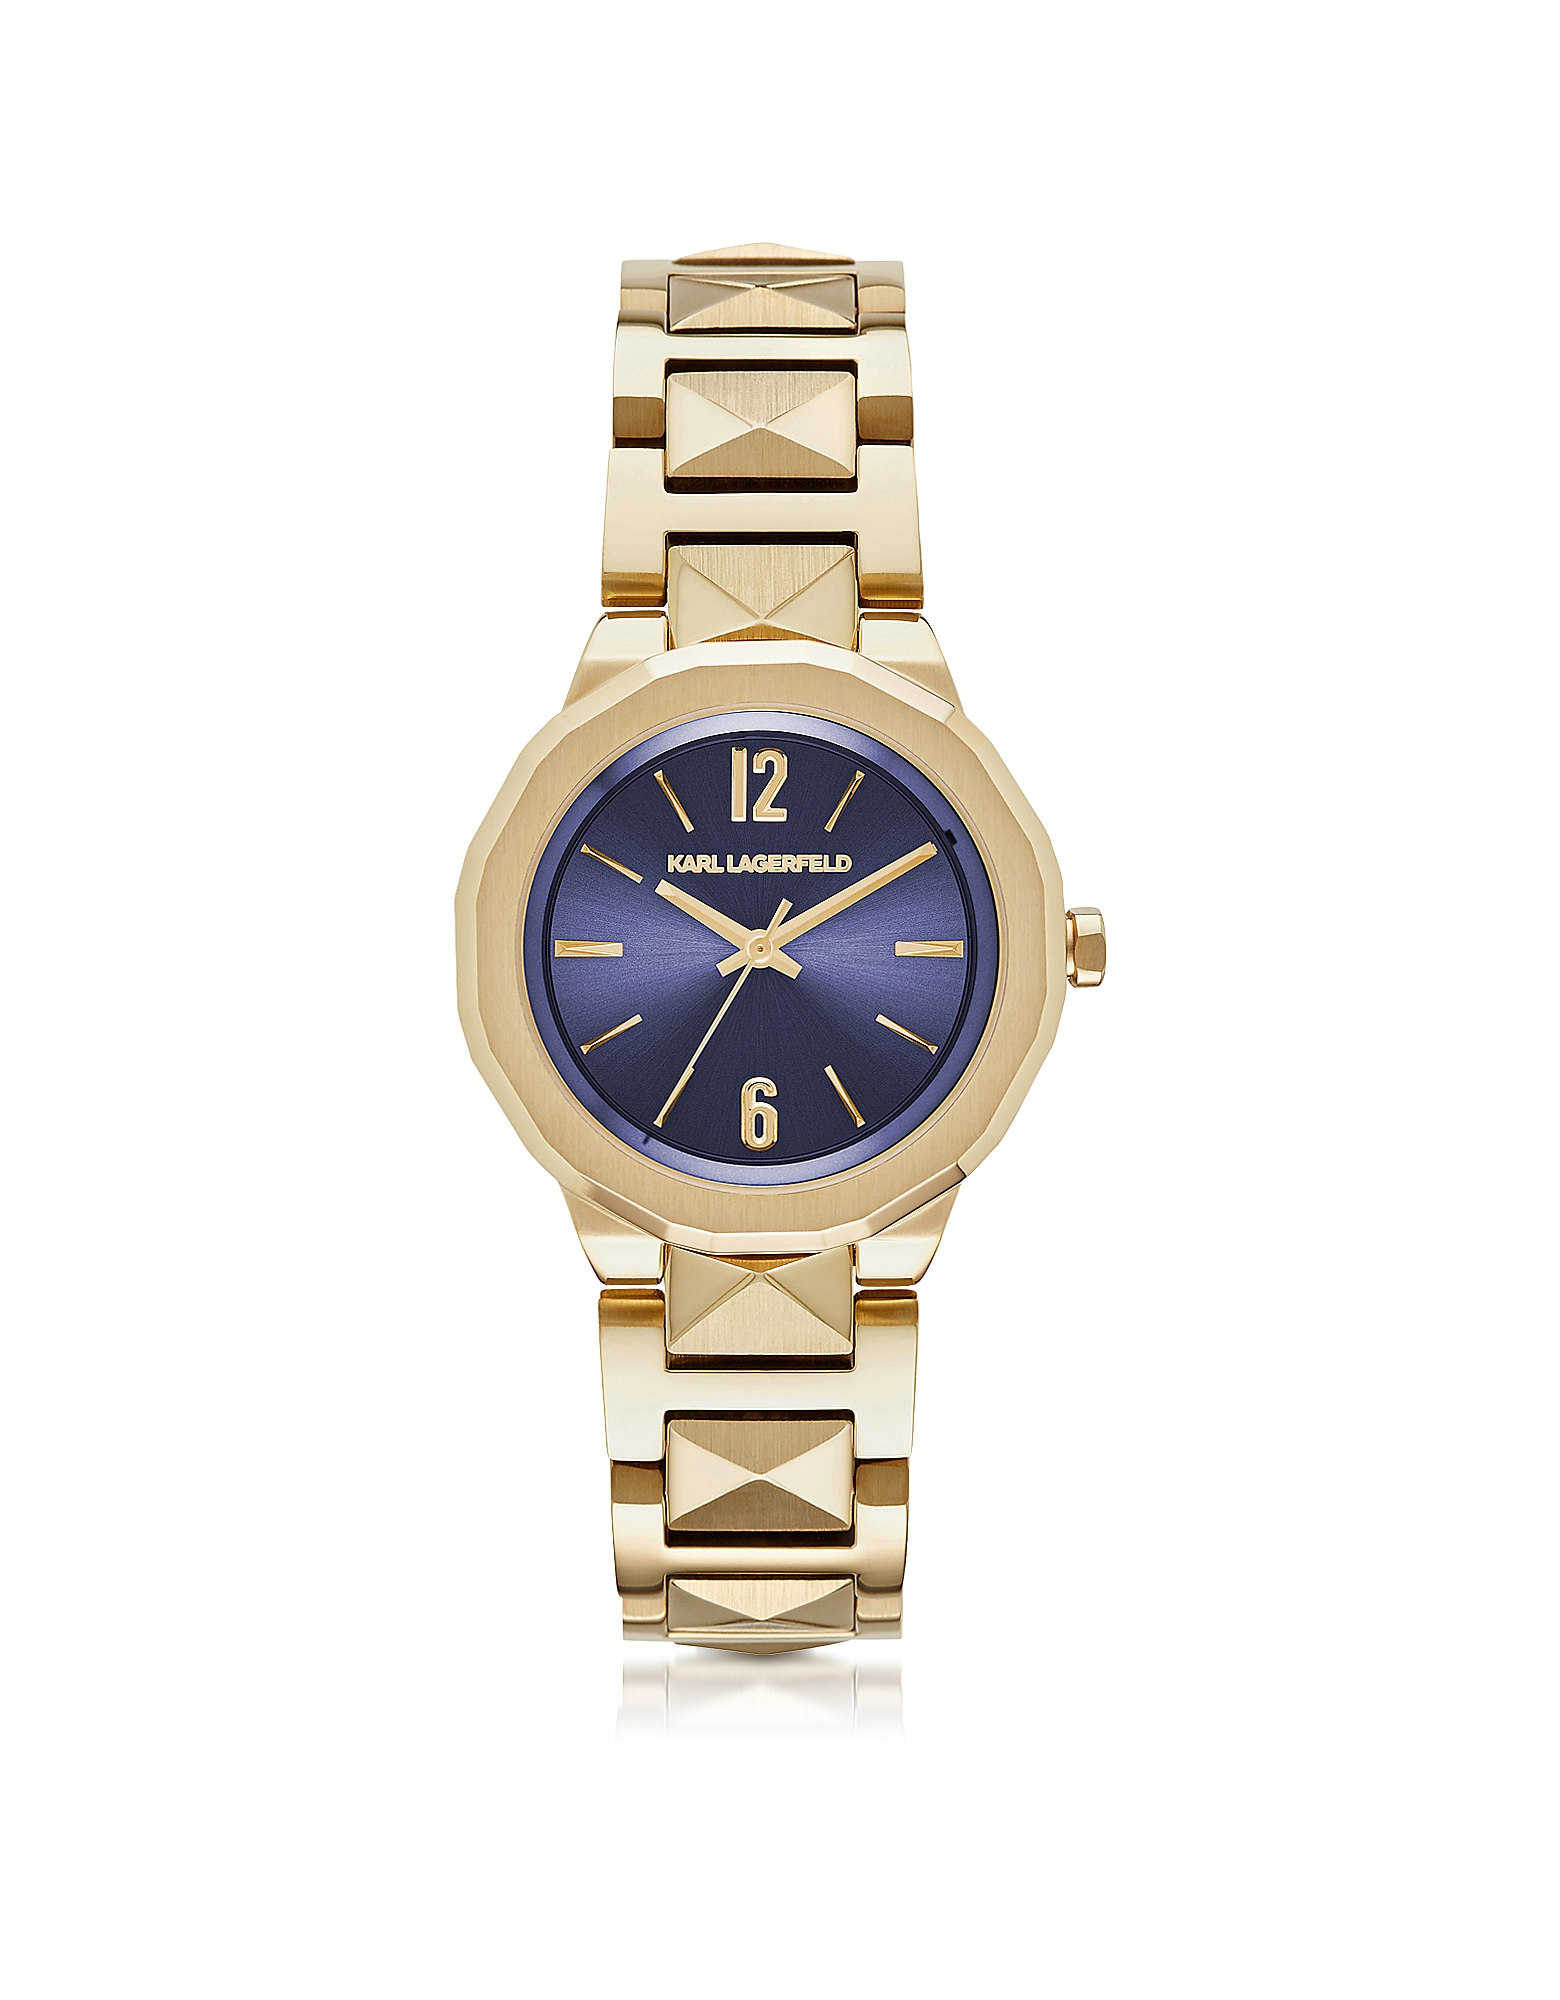 Karl Lagerfeld Women's Watches, Joleigh Gold-tone Stainless Steel Women's Watch